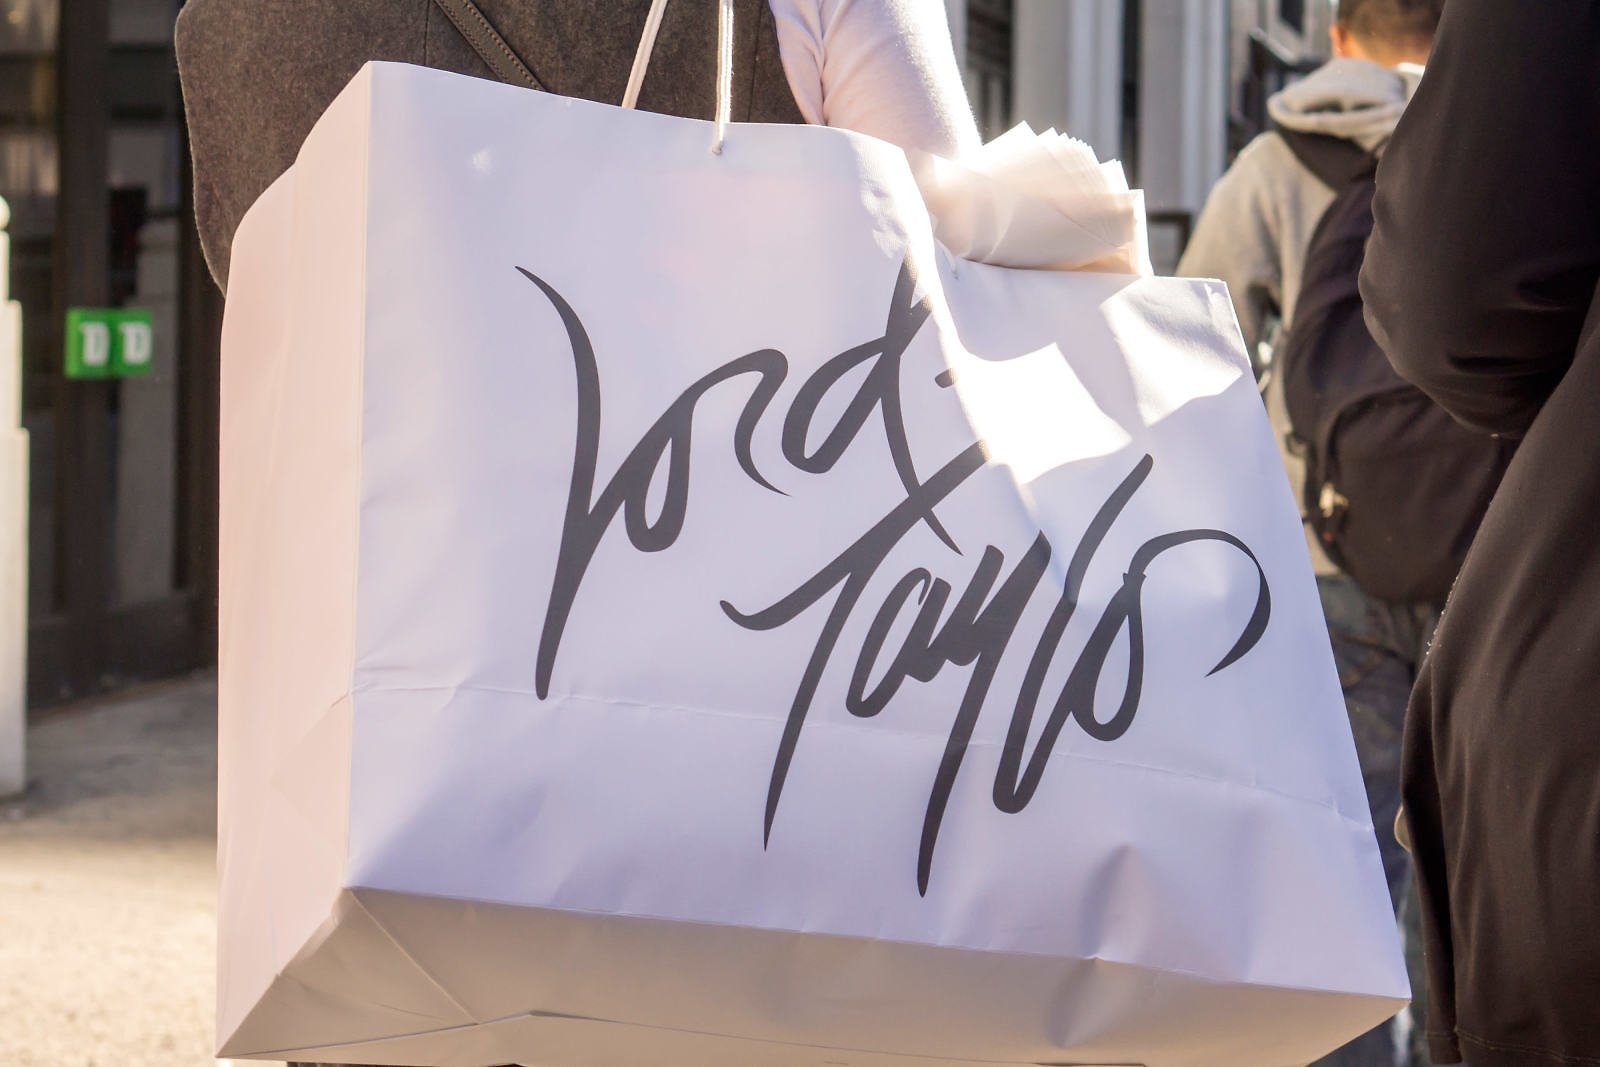 Lord & Taylor, Men's Wearhouse Owner File for Bankruptcy, Becoming The Latest Retail Casualties of The Pandemic